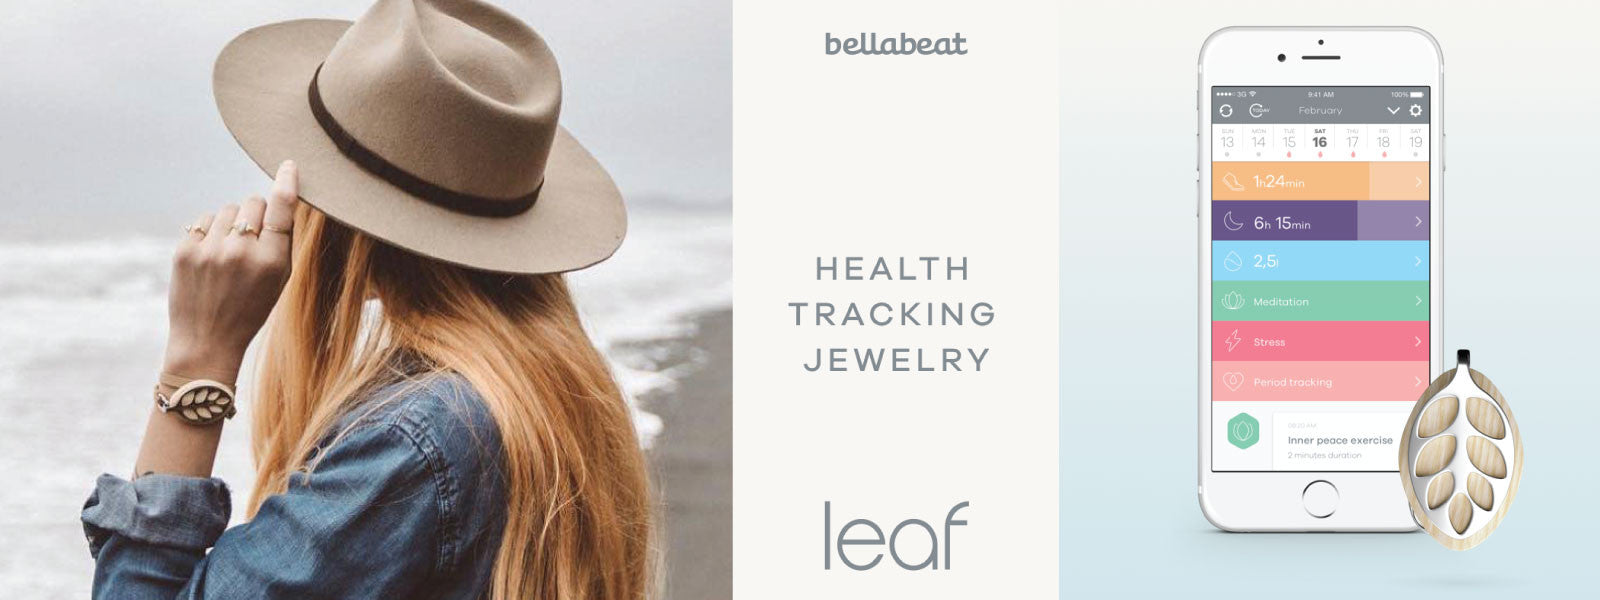 Bellabeat Activity Trackers